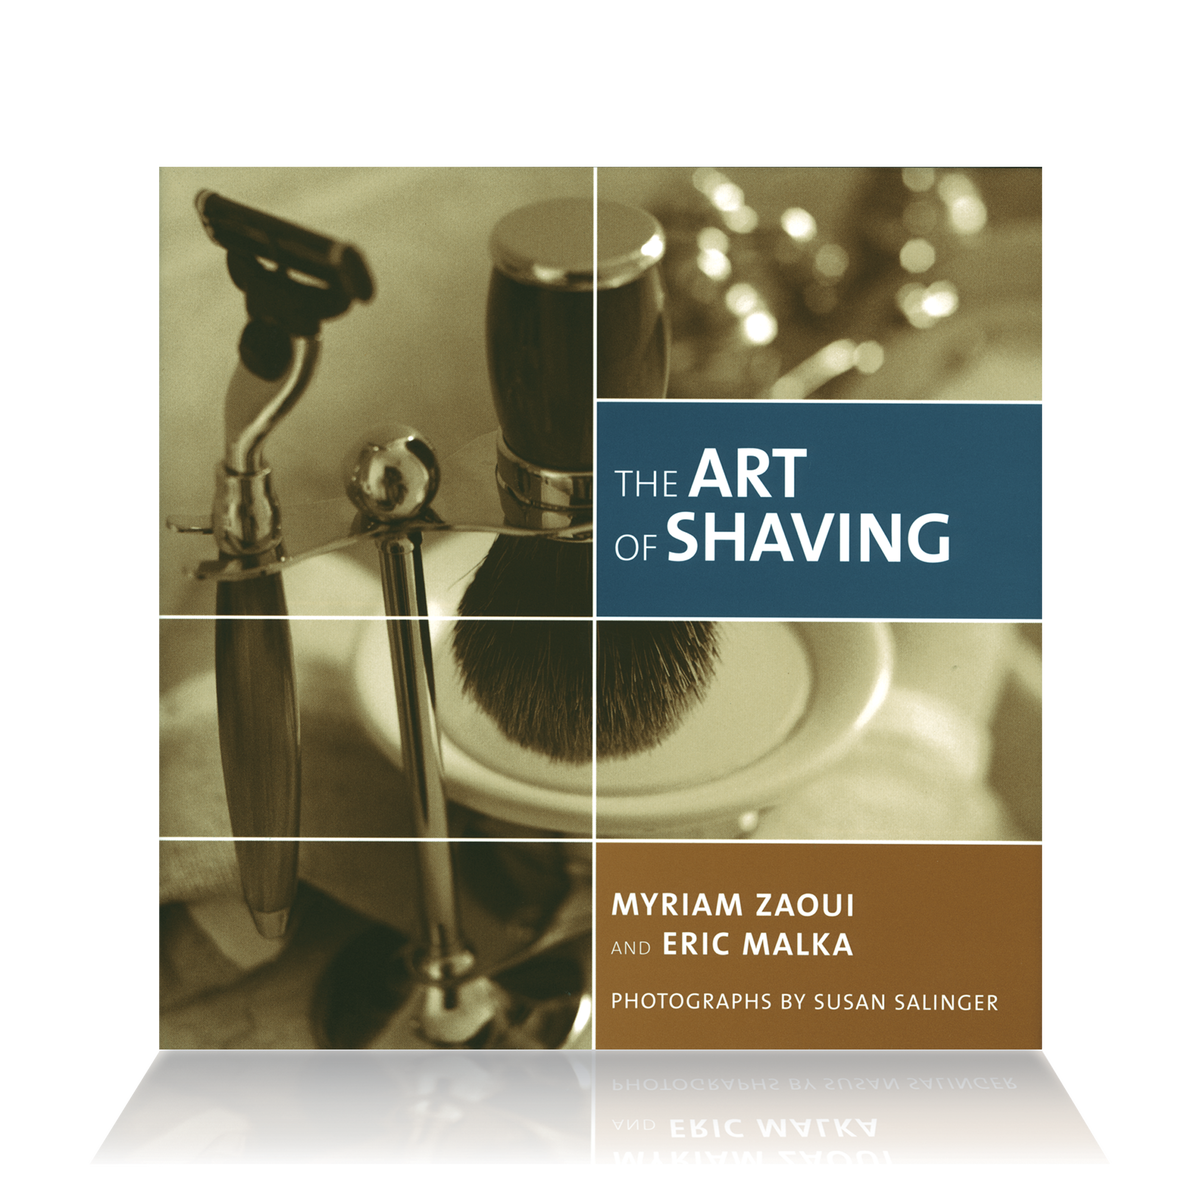 Pin By Mike D On Stuffology The Art Of Shaving Shaving Grooming Gifts